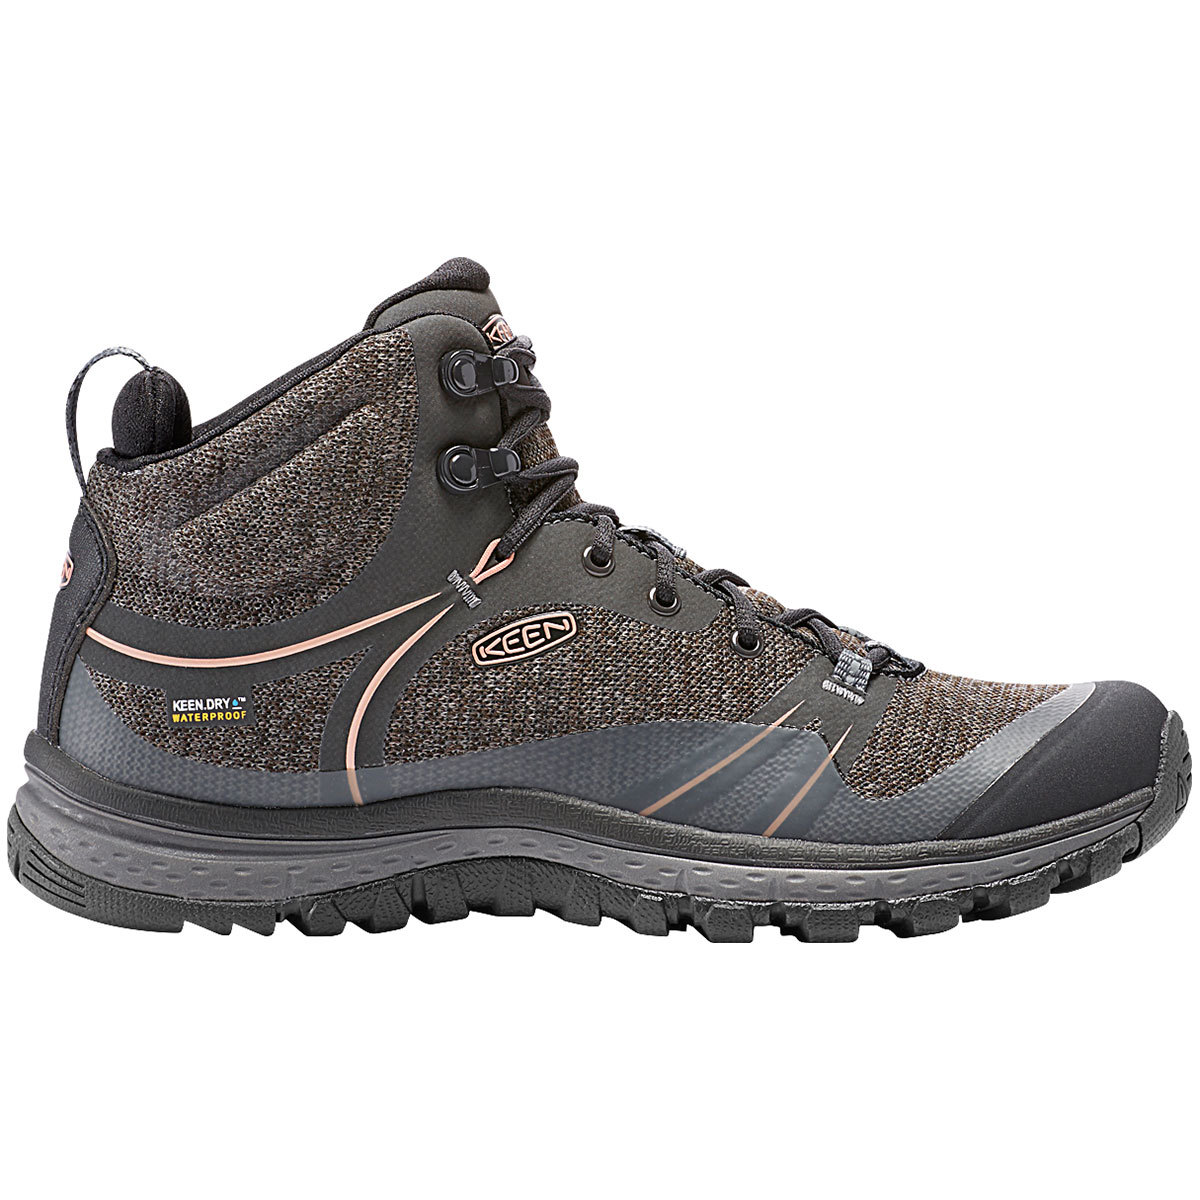 Keen Women's Terradora Mid Waterproof Hiking Boots, Raven - Black, 9.5